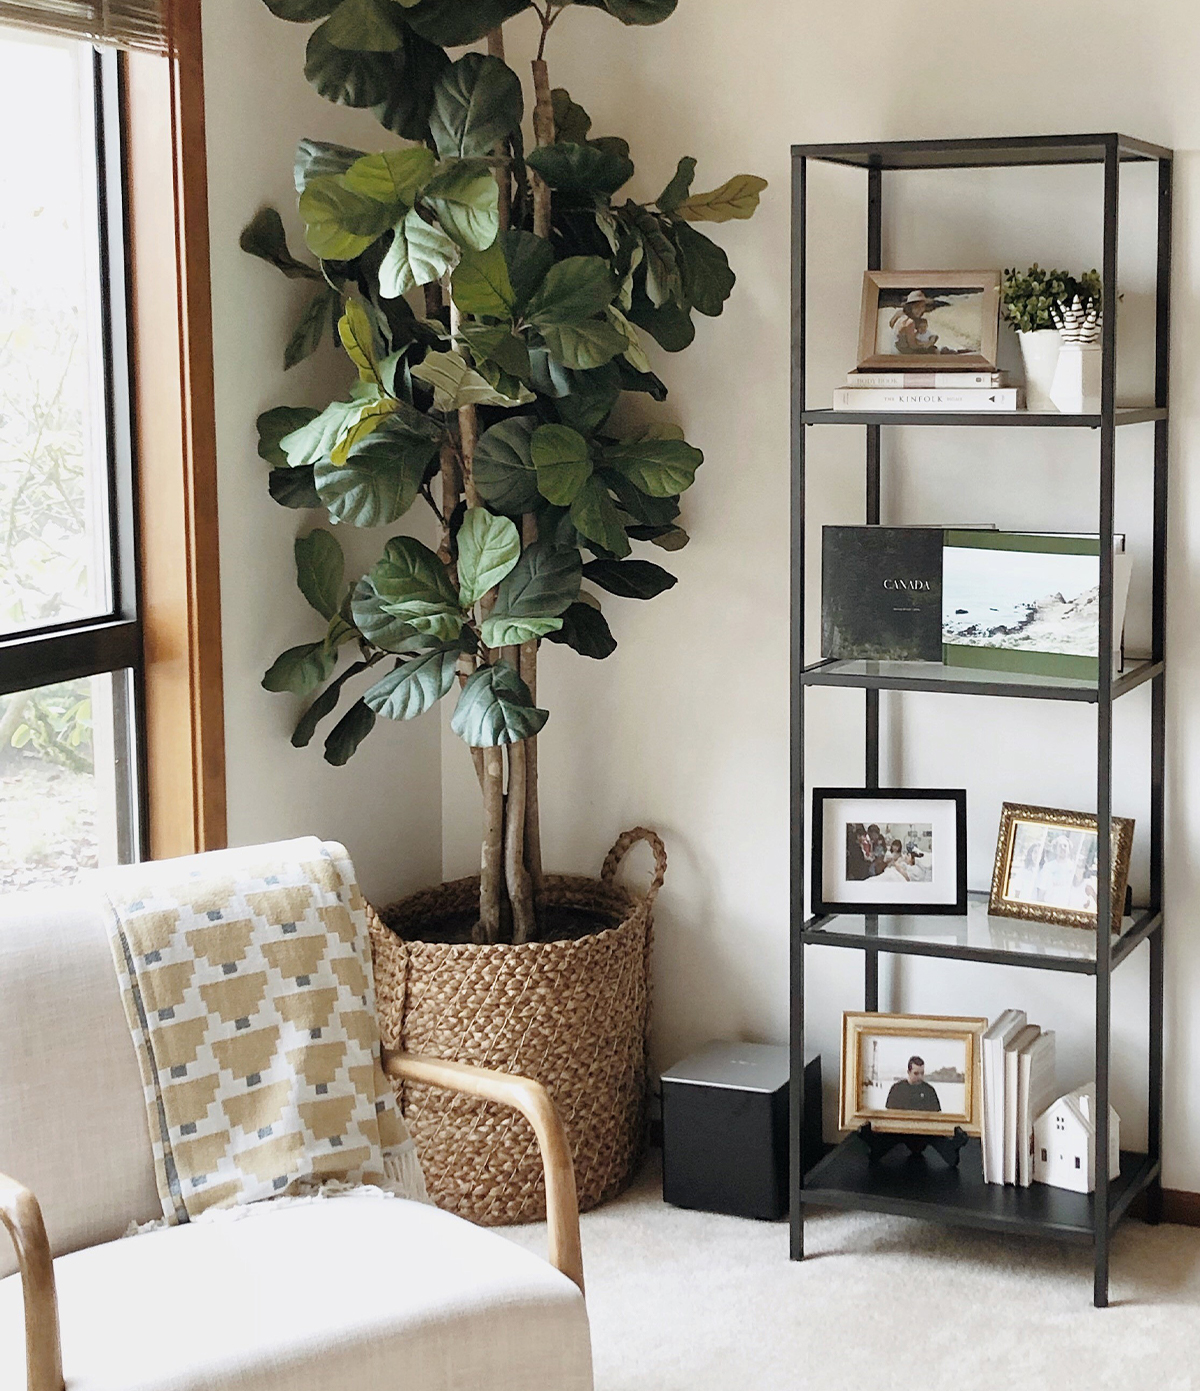 Multilevel shelf adorned with frames and photo books